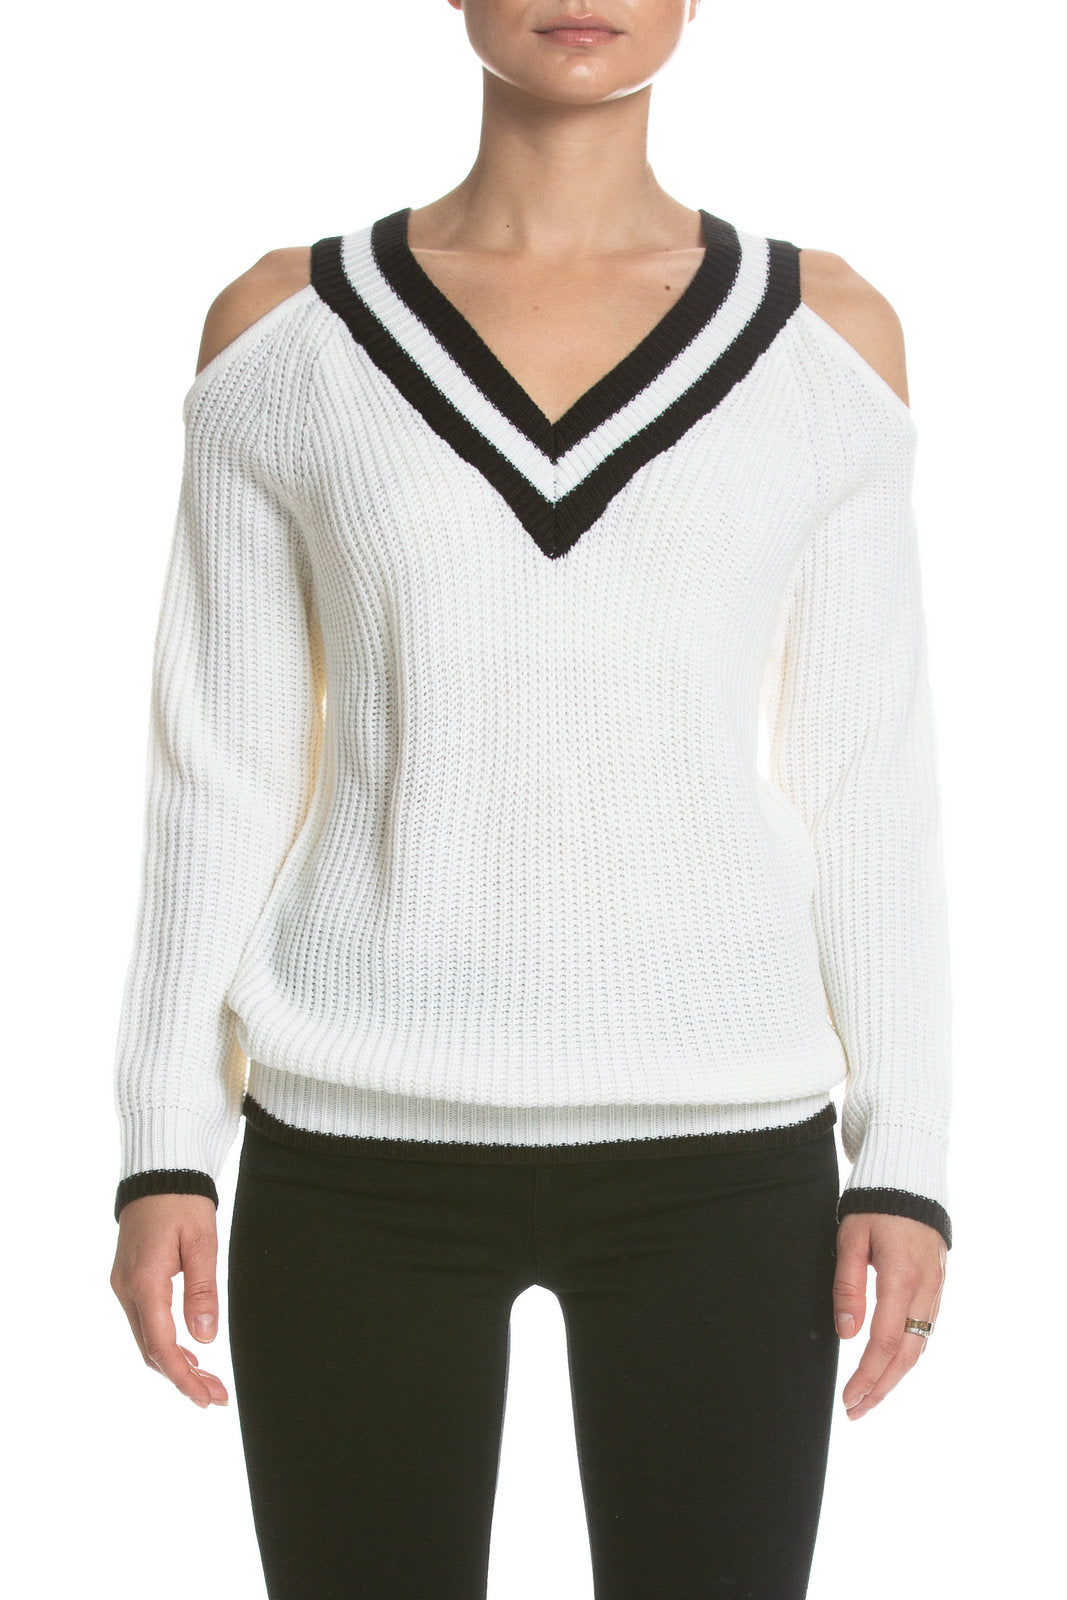 Ivory and Black Cut Out Varsity Sweater